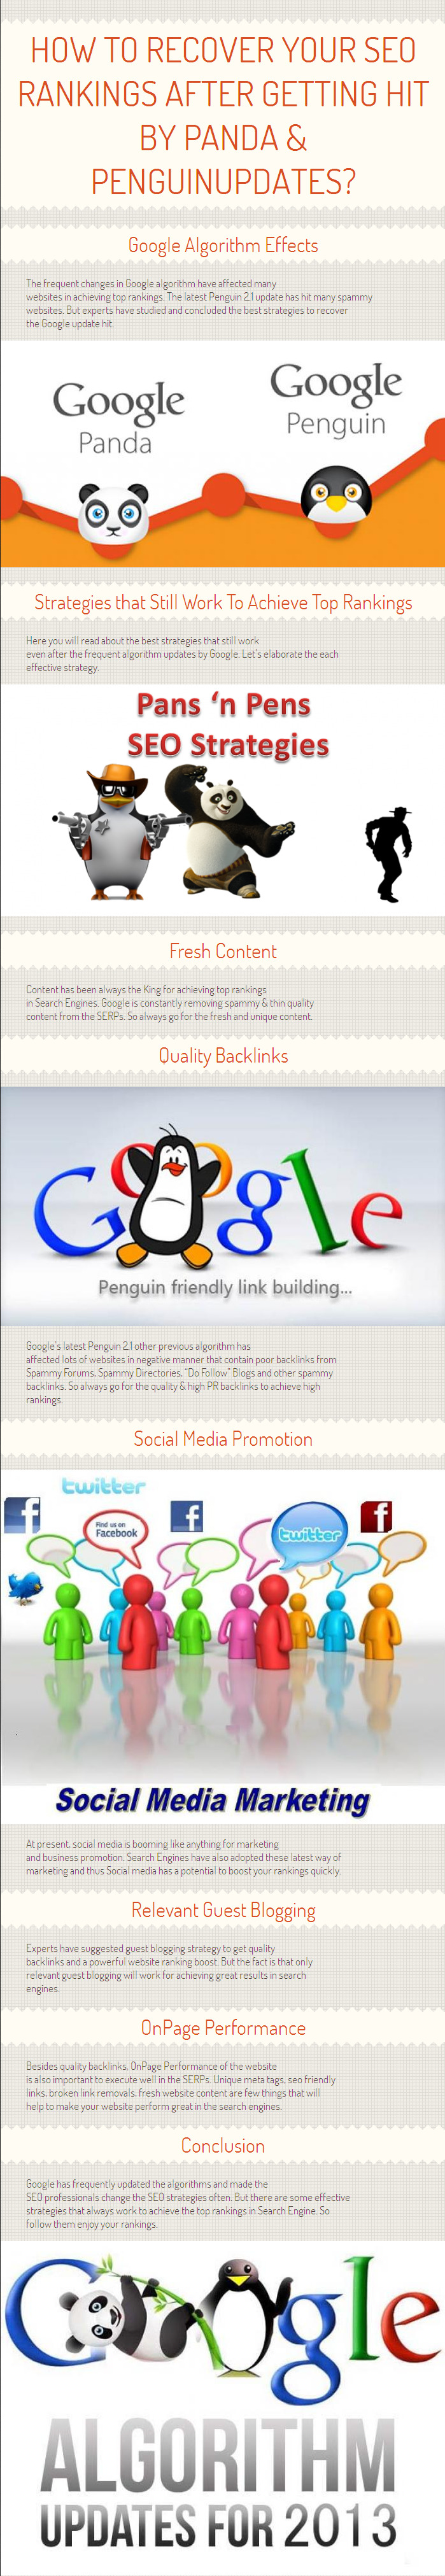 How To Recover Your SEO Rankings After Getting Hit By Panda & Penguin Updates By www.topranker.biz